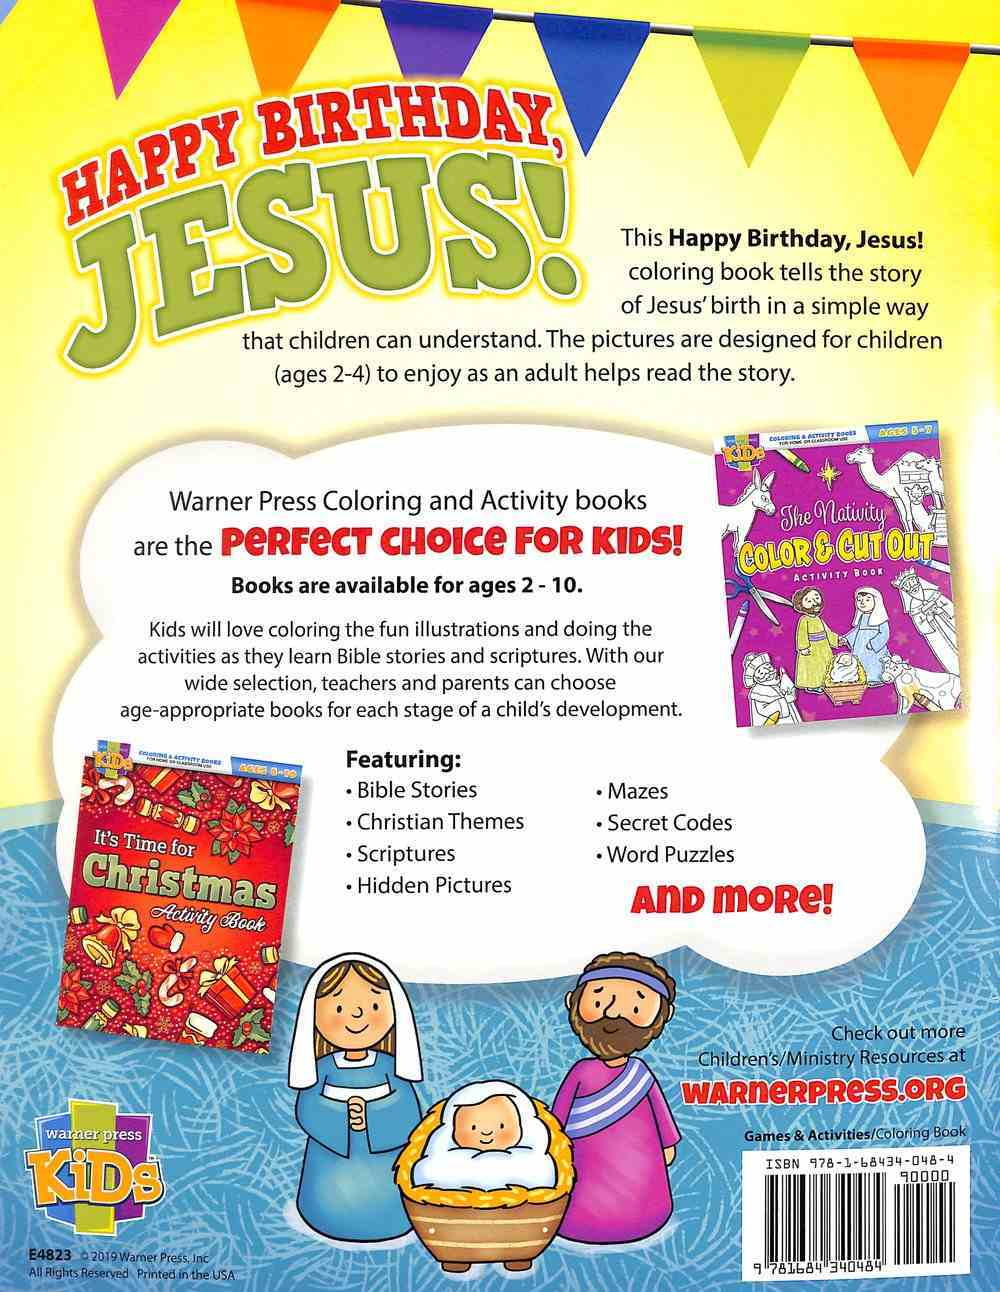 Happy Birthday, Jesus (Ages 2-4, Reproducible) (Coloring Book) (Warner Press Colouring & Activity Books Series) Paperback